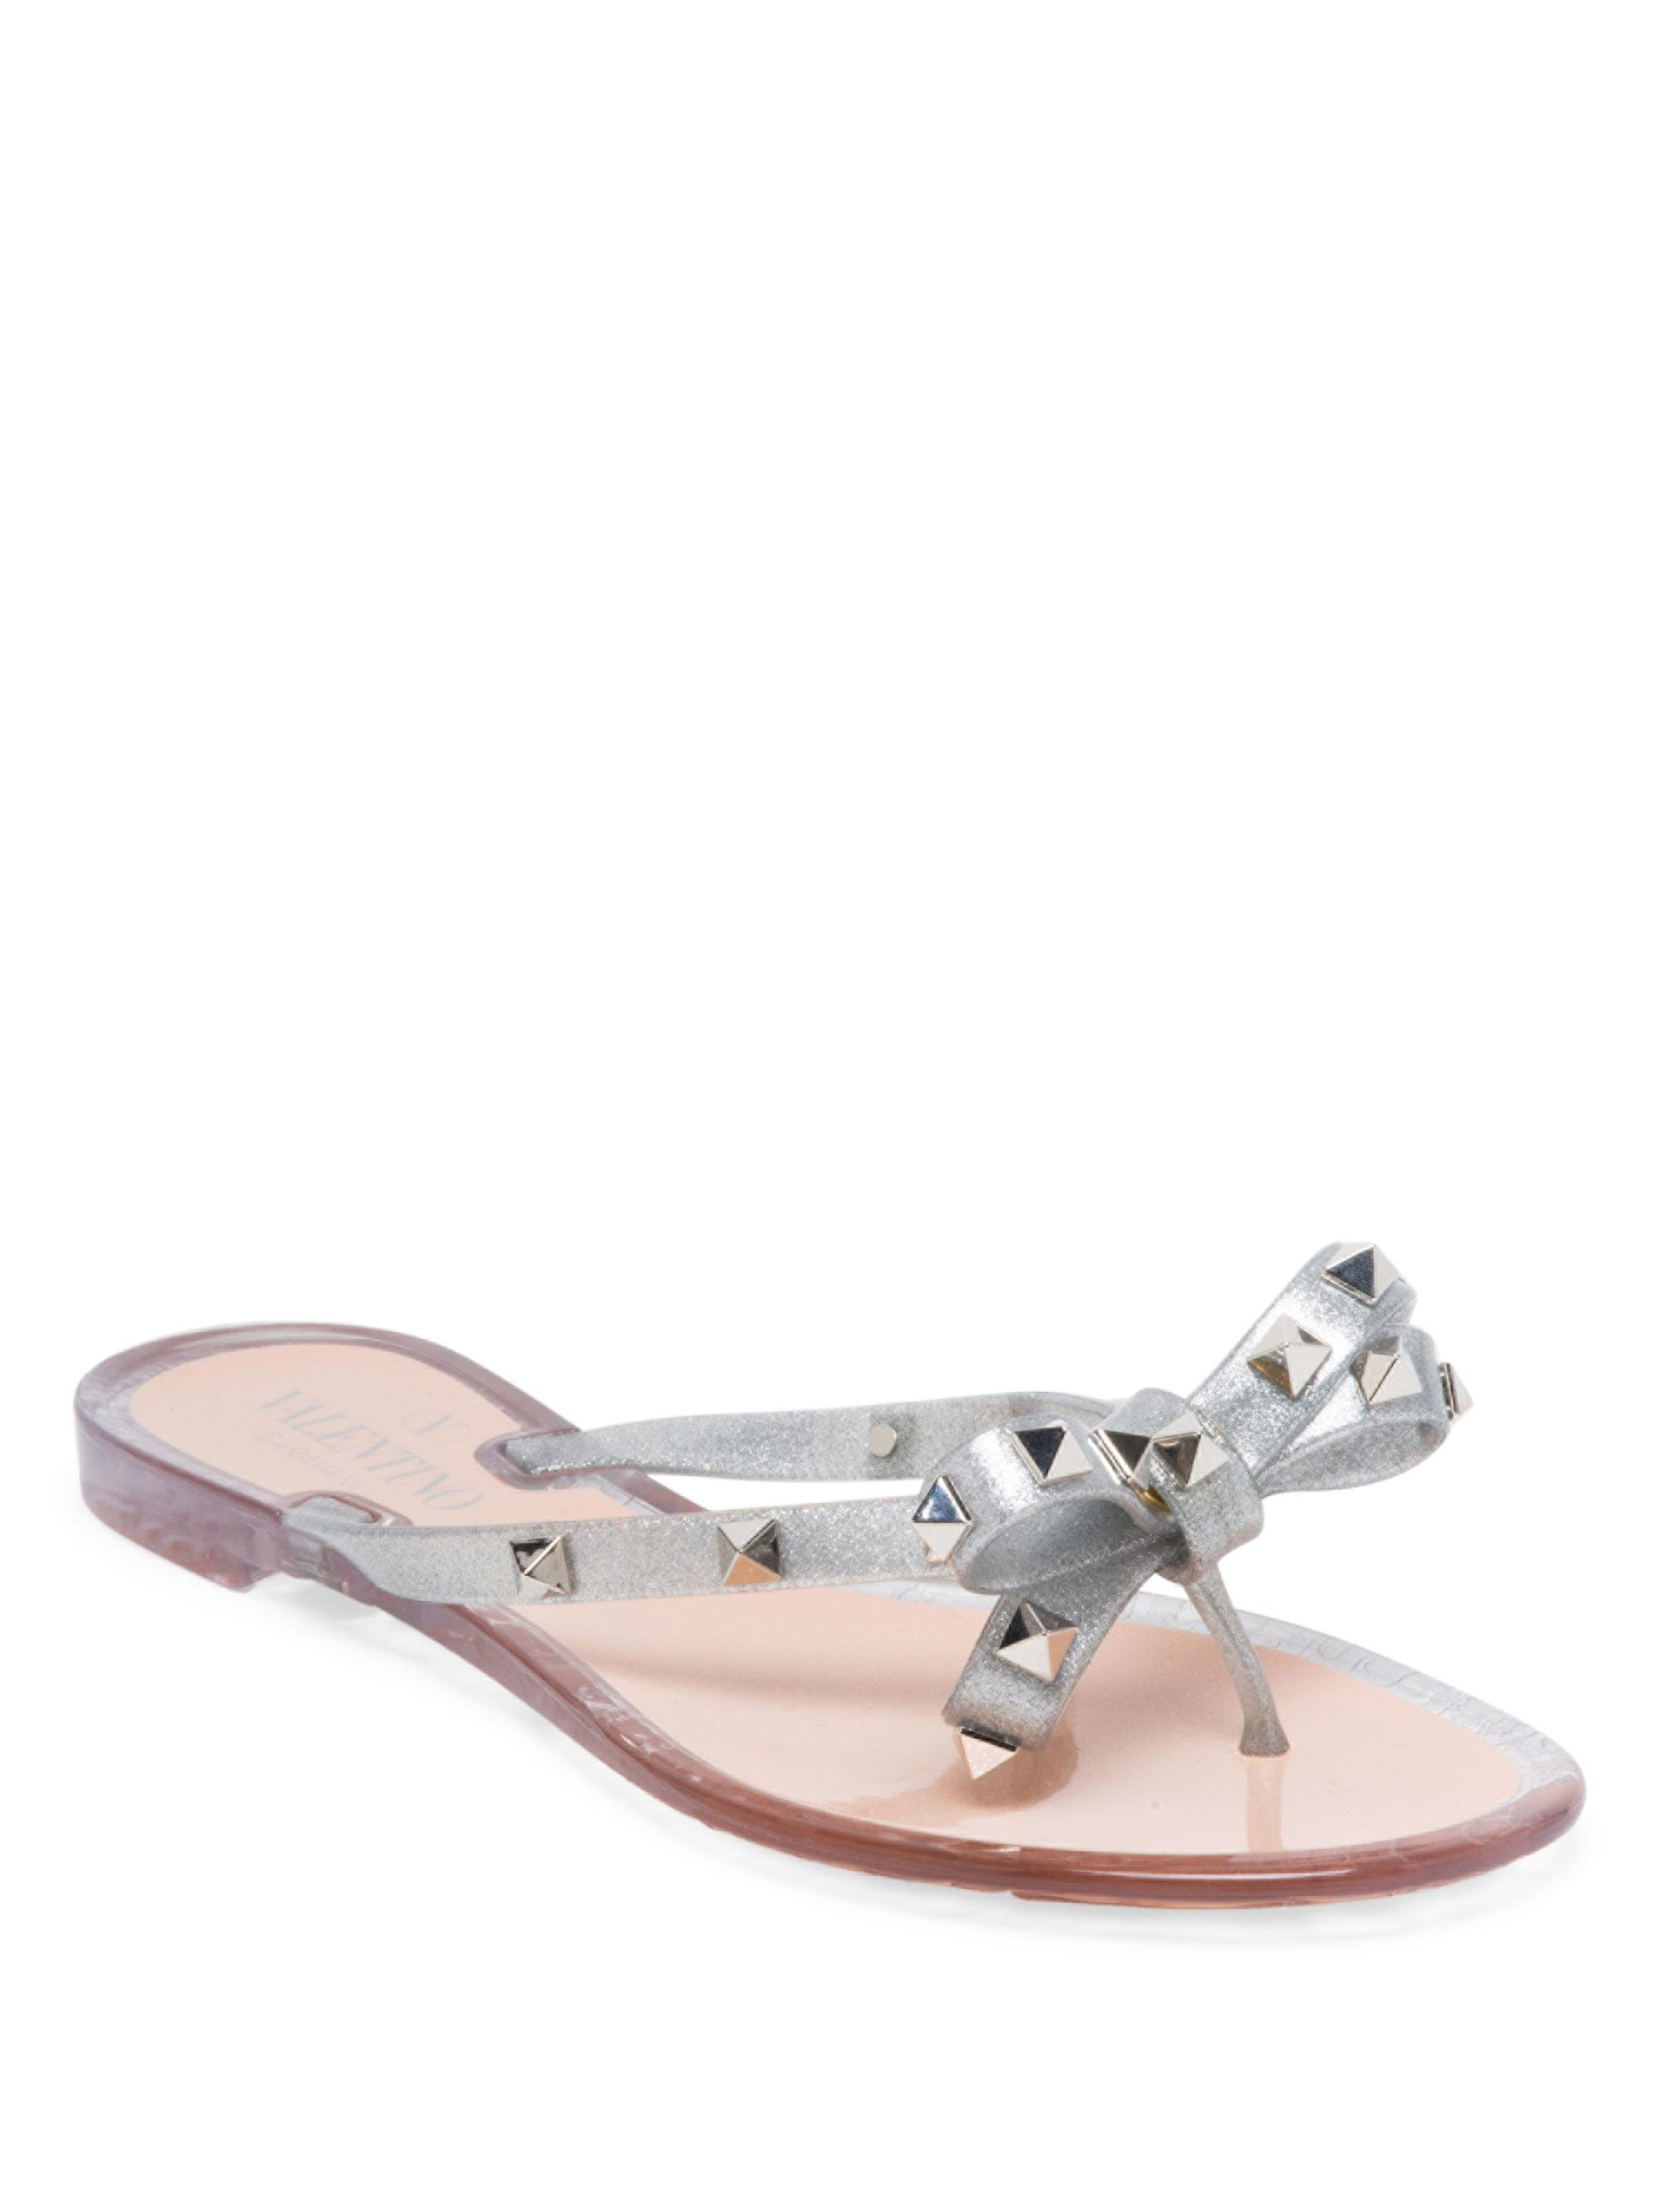 buy cheap 2015 new really Valentino Grey Valentino Garavani Rockstud Jelly Bow Sandals wjXJg